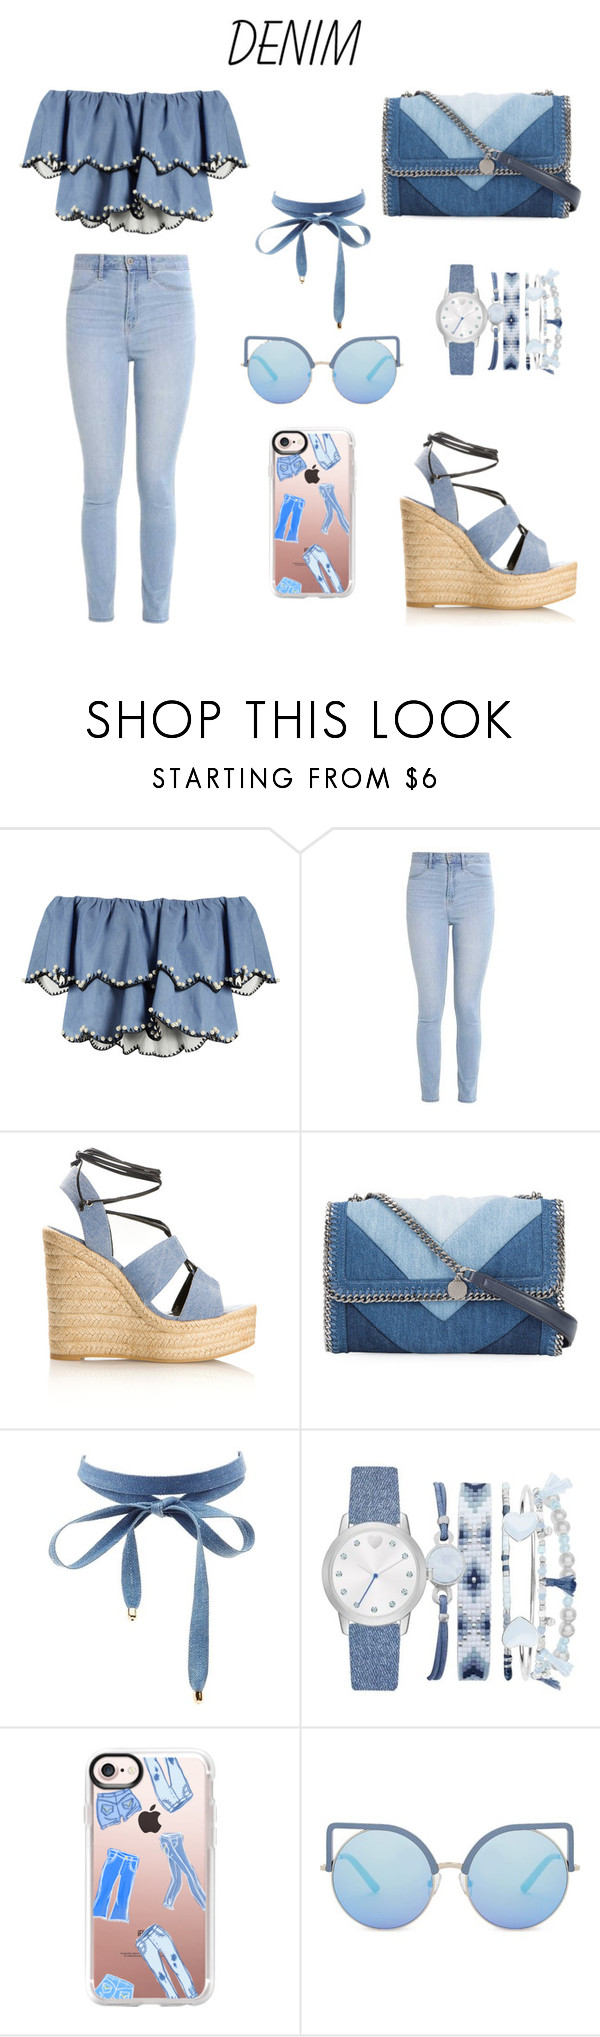 """""""Untitled #22"""" by kgordo73 ❤ liked on Polyvore featuring HUISHAN ZHANG, Hollister Co., Yves Saint Laurent, STELLA McCARTNEY, Charlotte Russe, A.X.N.Y., Casetify and Matthew Williamson"""